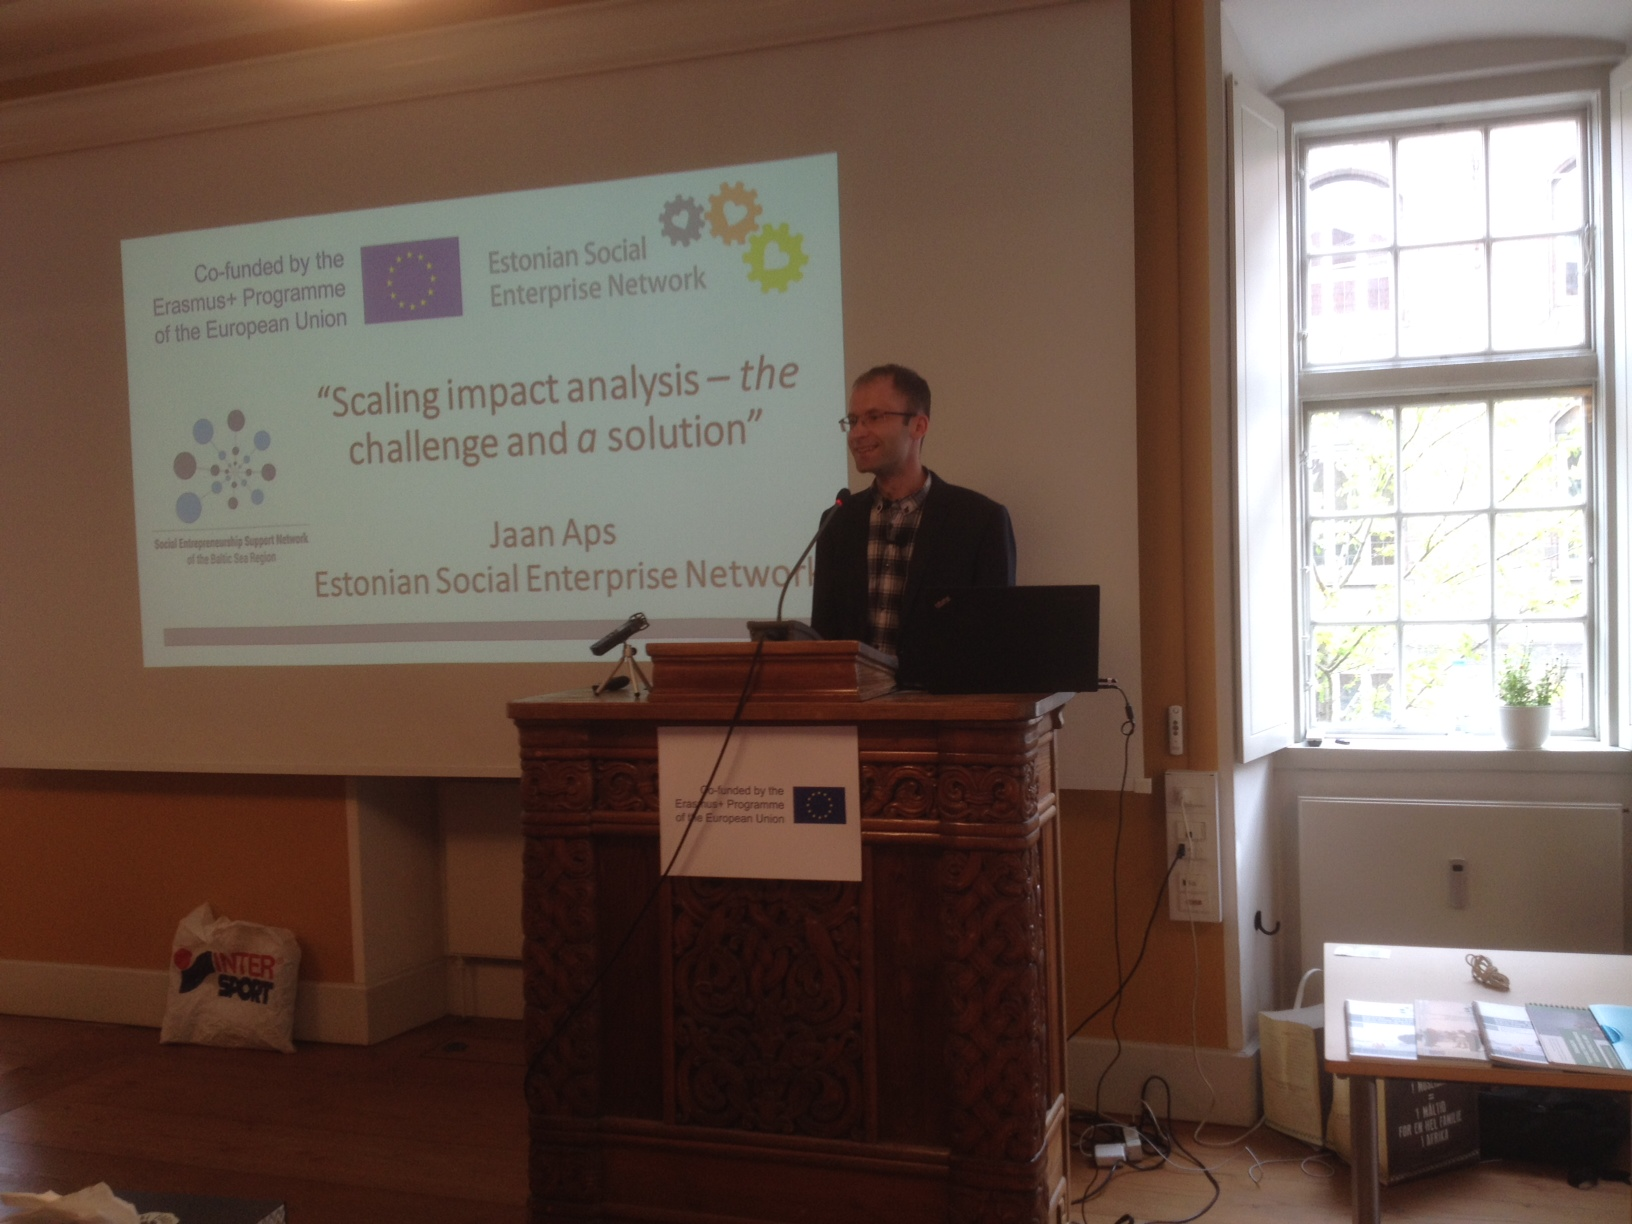 Jaan Aps - Dissemination Conference for Erasmus+ Project SEBSR 20th May 2016 in Copenhagen